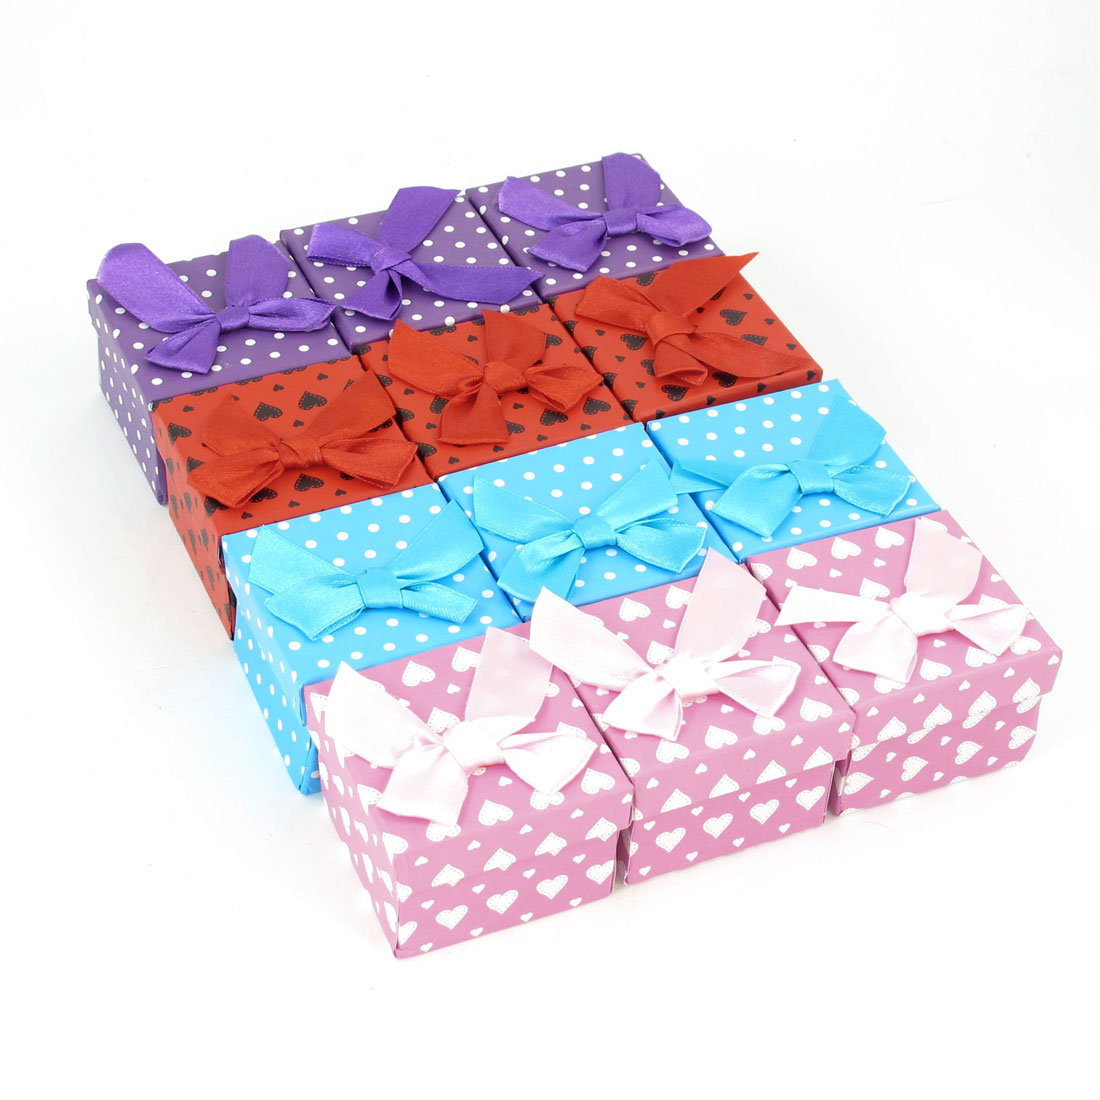 12 Pcs Assorted Color Bowknot Accent Cardboard Square Present Container Case